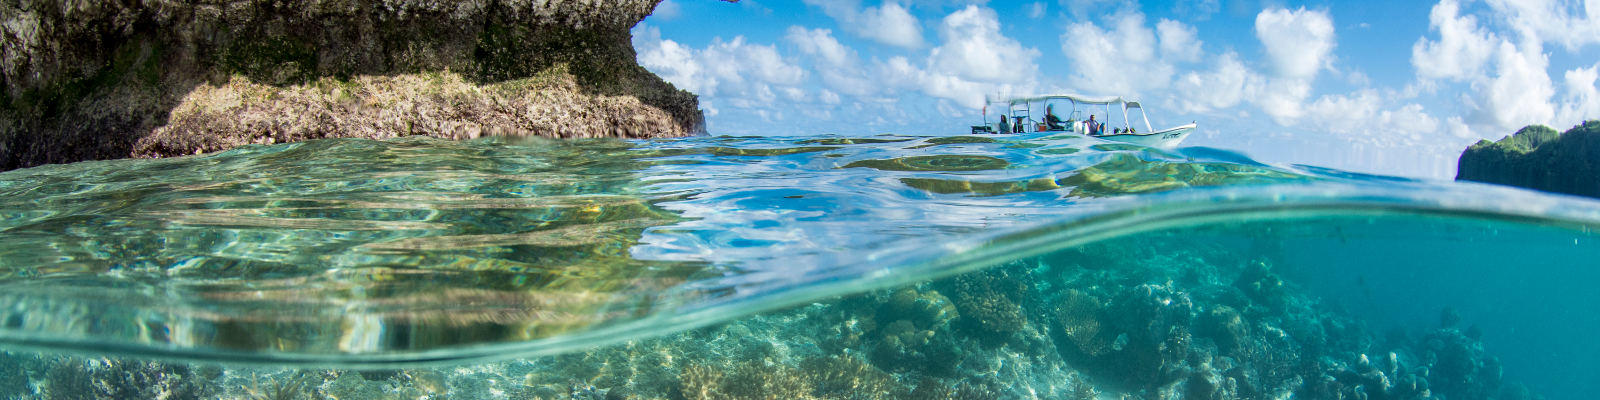 With movies still on our minds, we've decided to tak. Top 10 South Pacific Islands